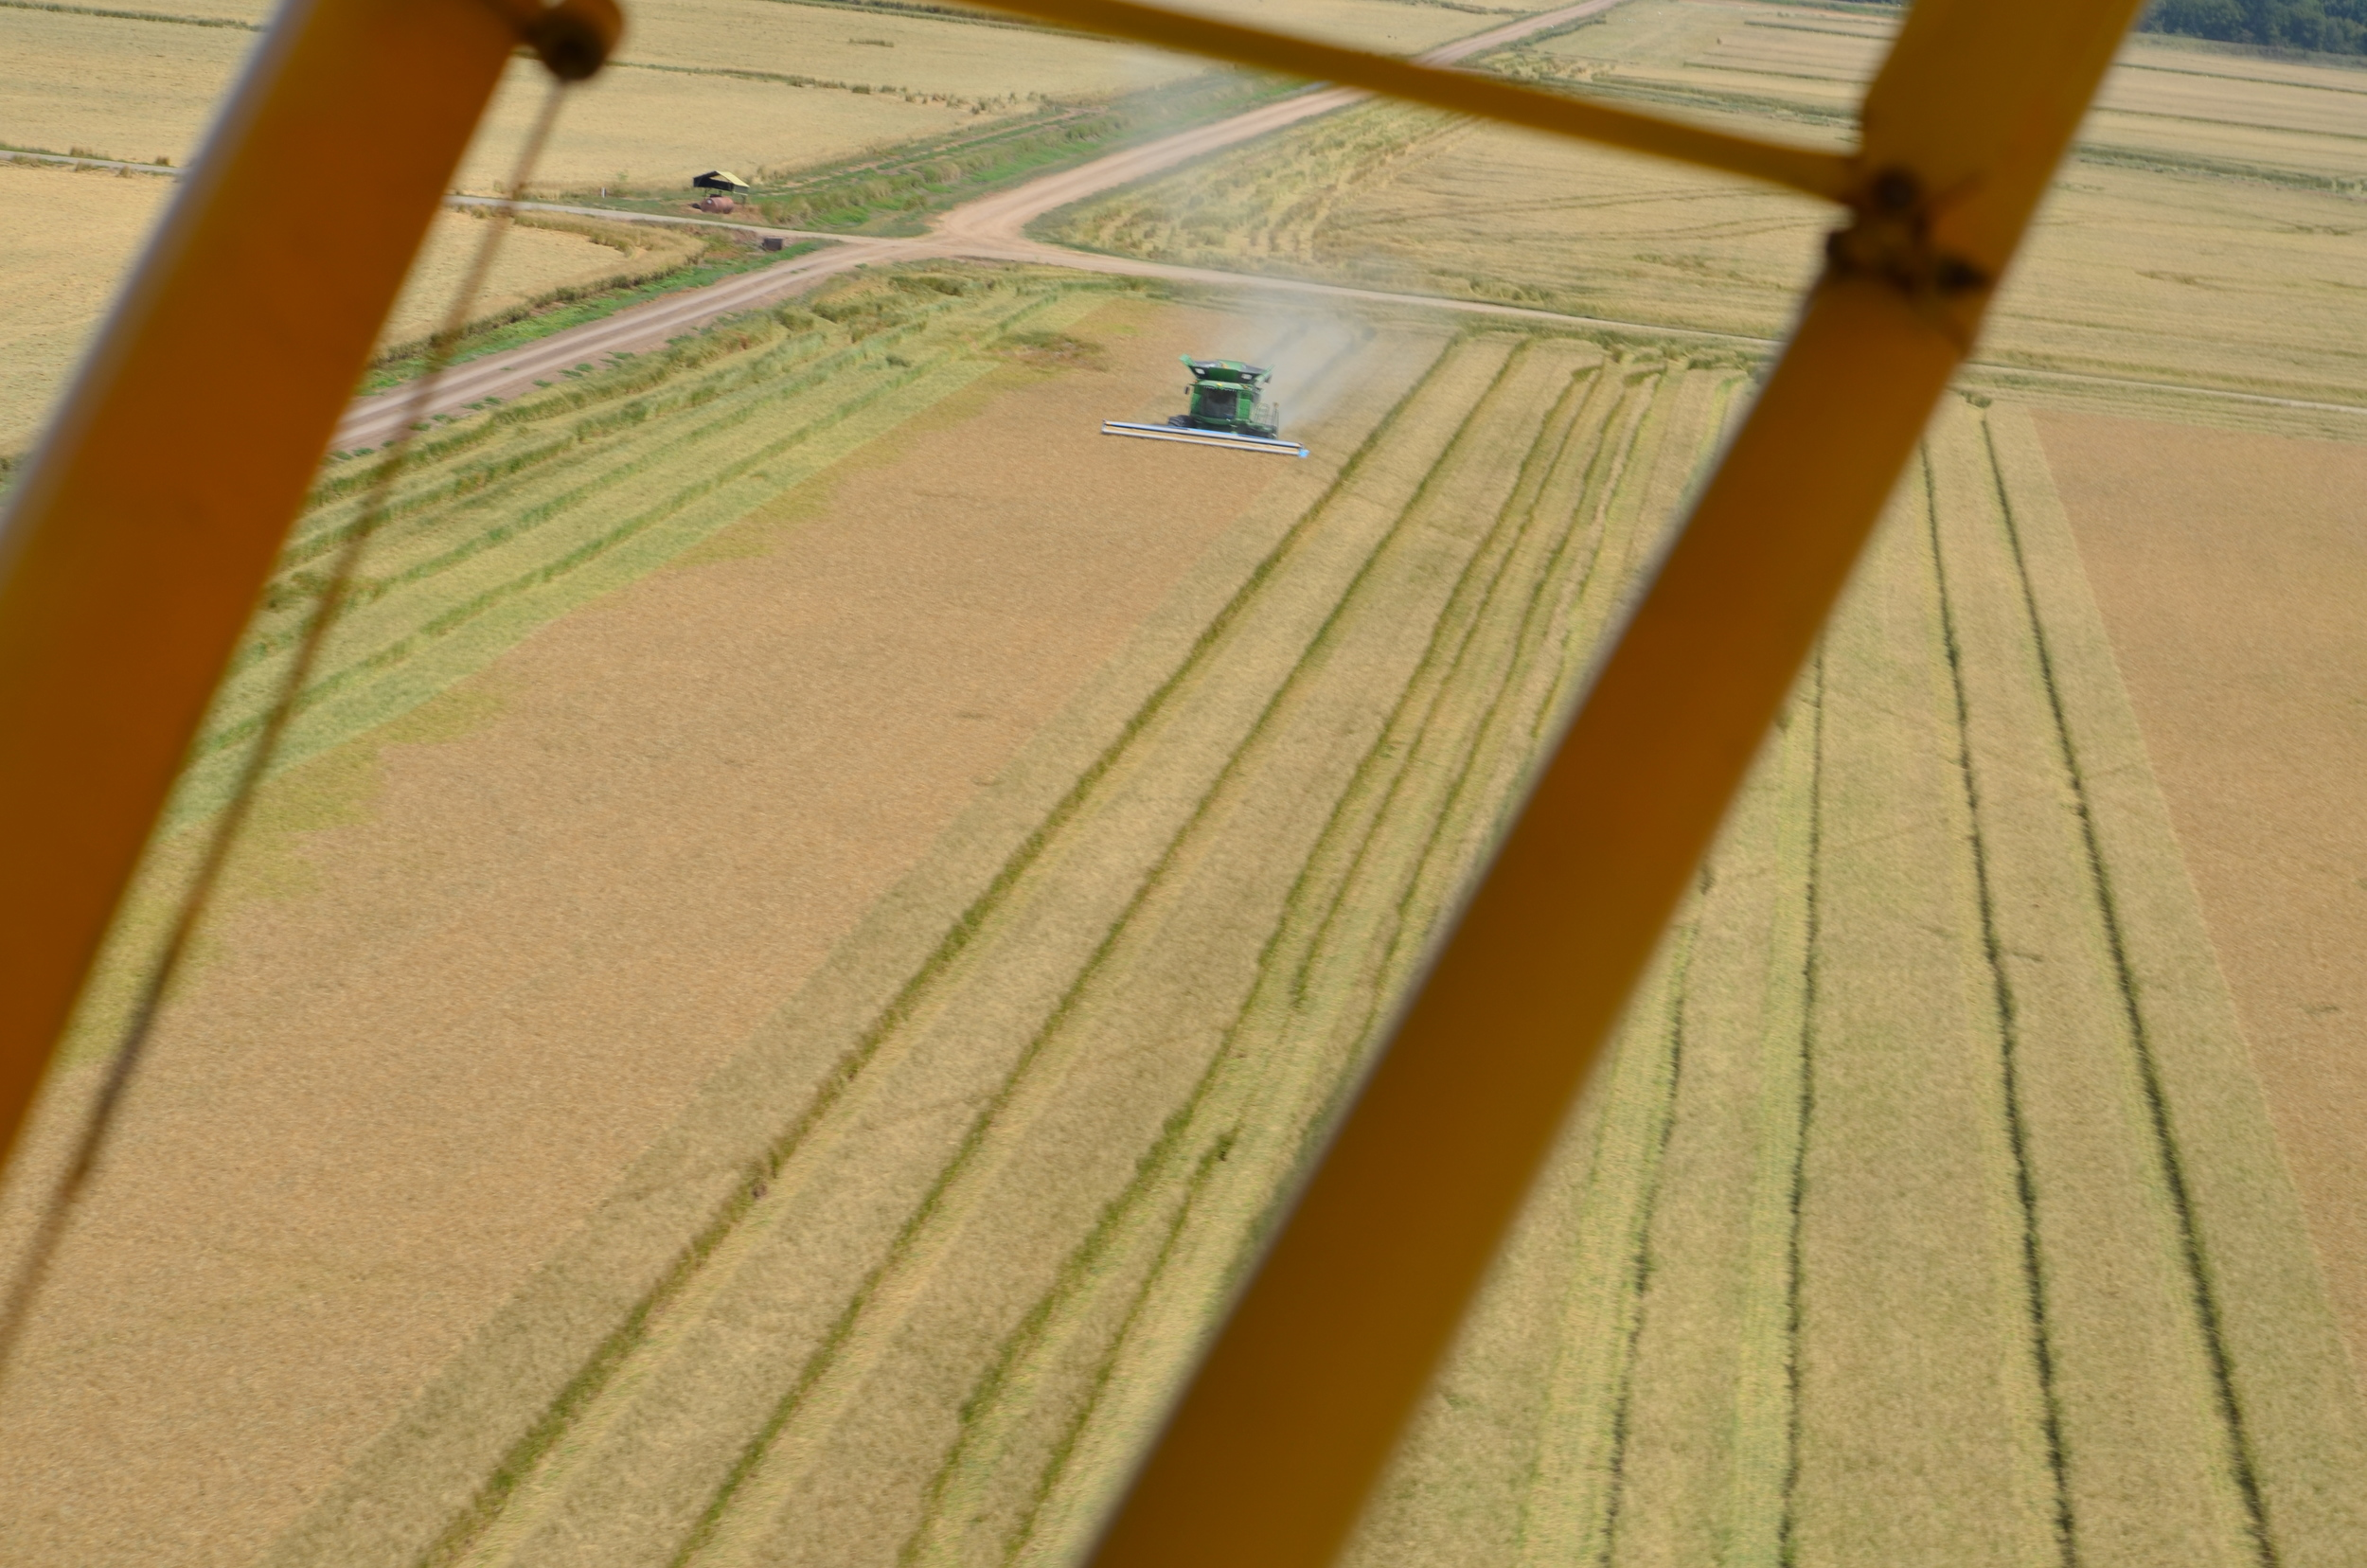 observing our rice harvest from a plane